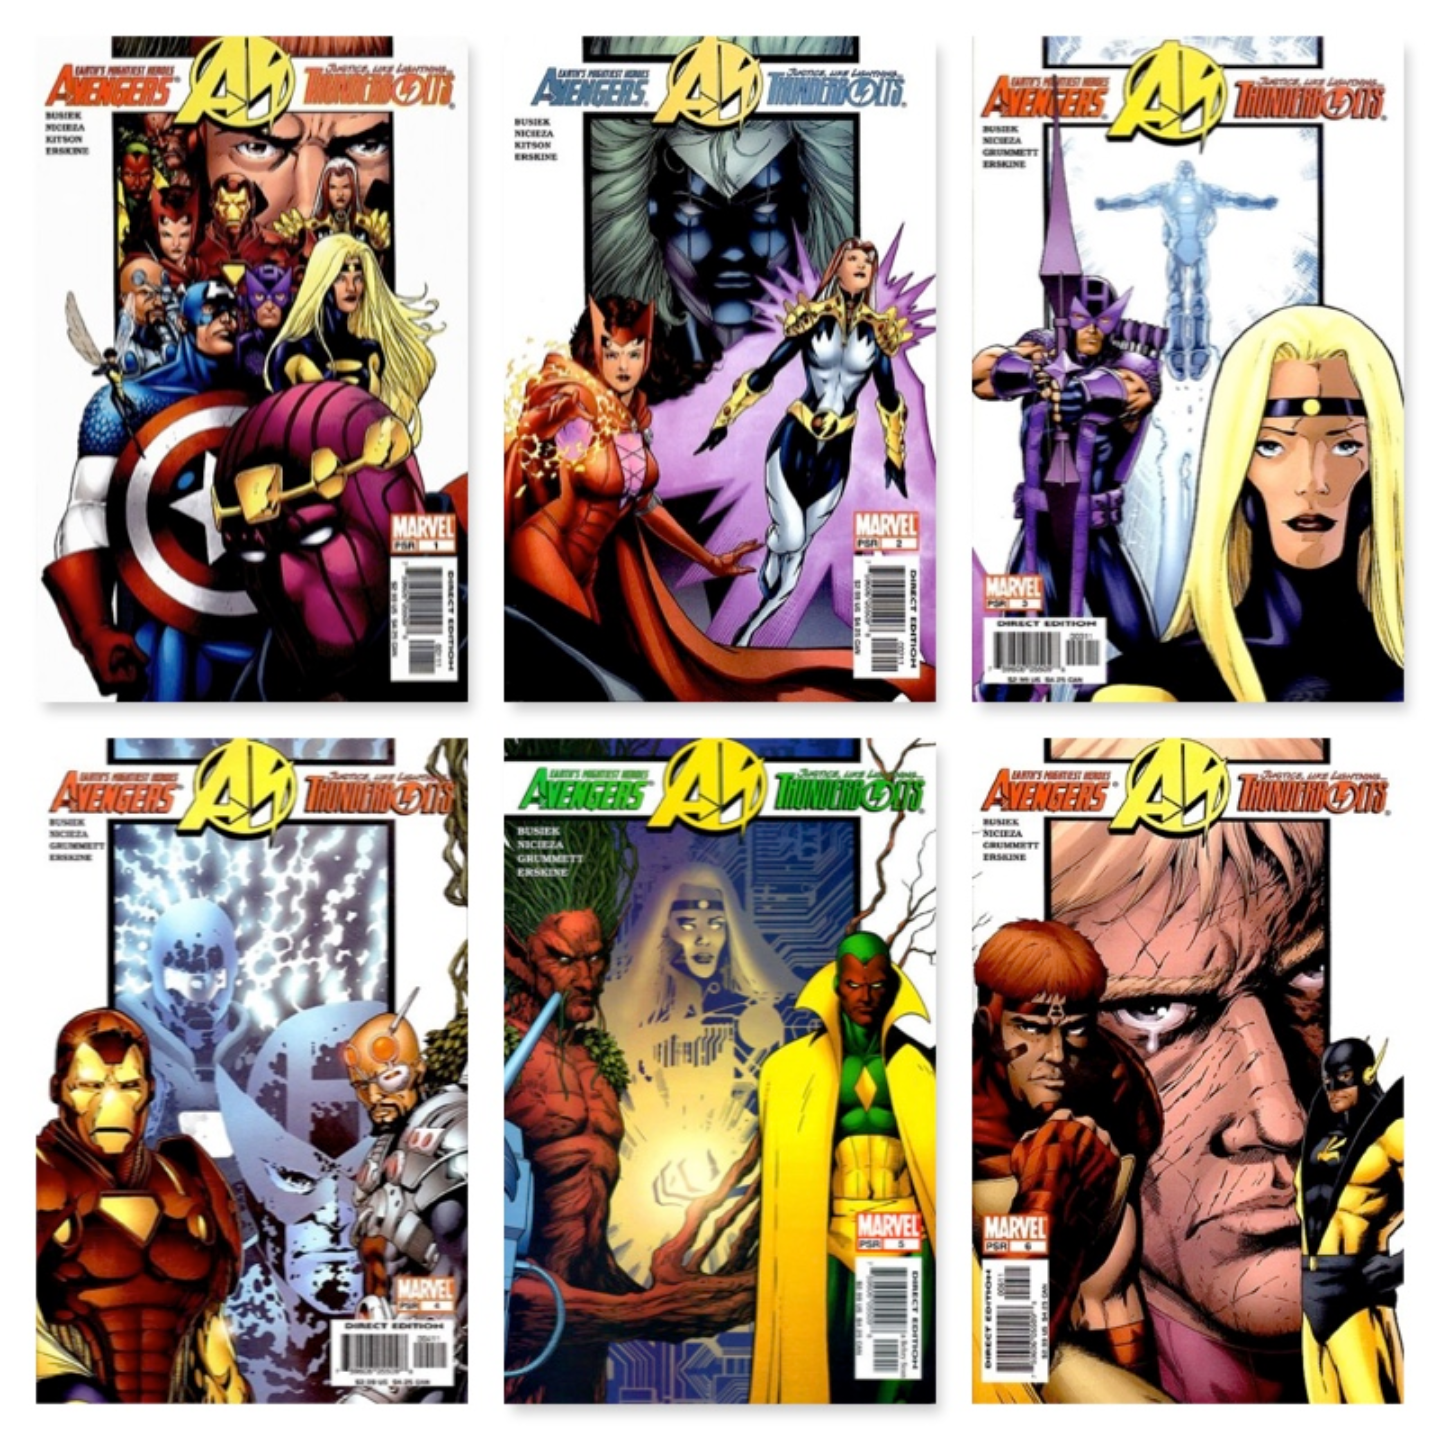 AVENGERS / THUNDERBOLTS #1 - #6 (COMPLETE LIMITED SERIES)